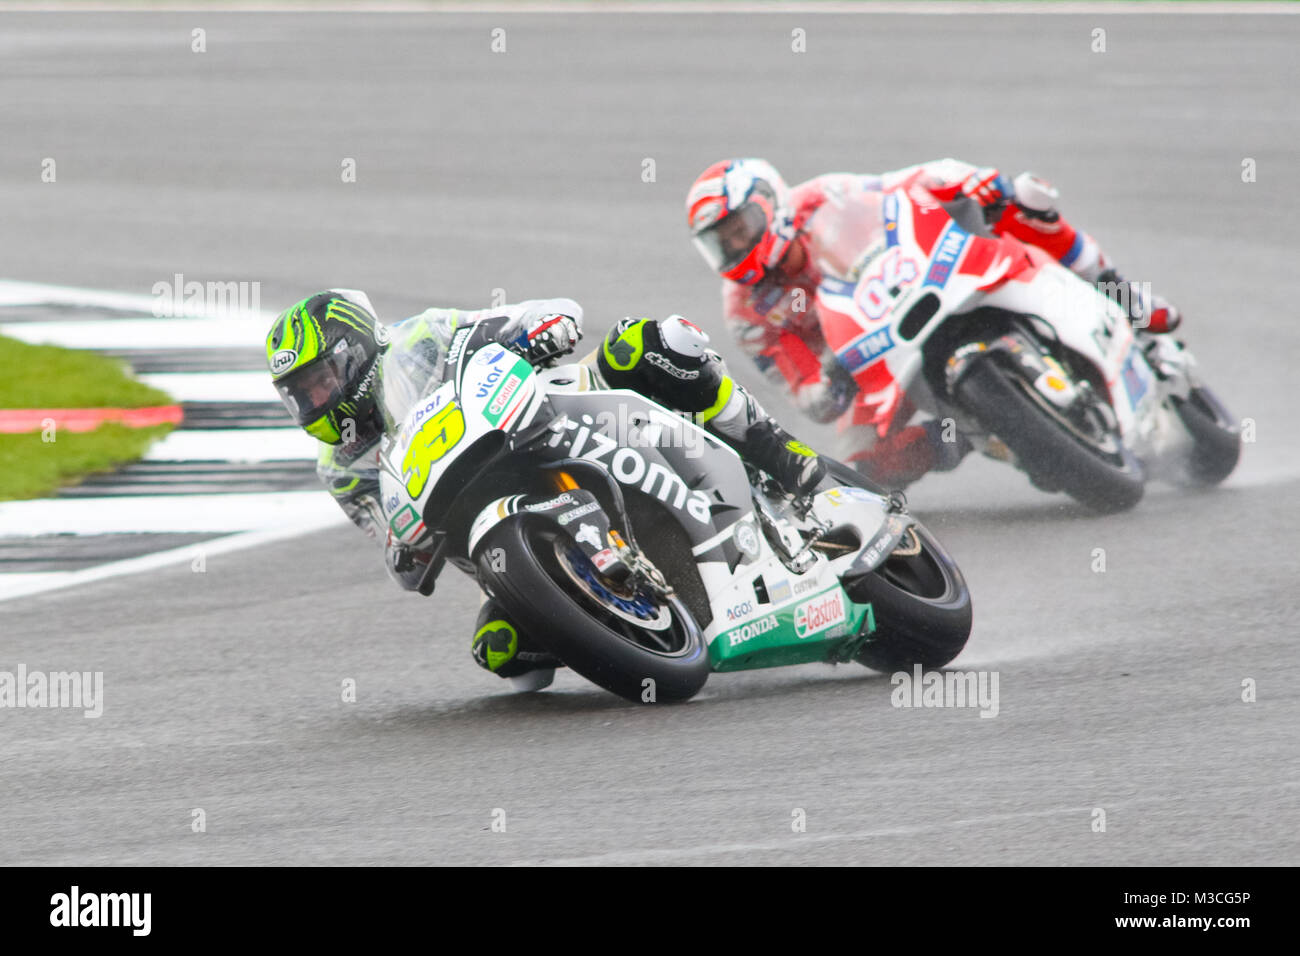 Cal Crutchlow leads Andrea Dovizioso during wet MotoGP Qualifying for the British Grand Prix 2016 - Stock Image